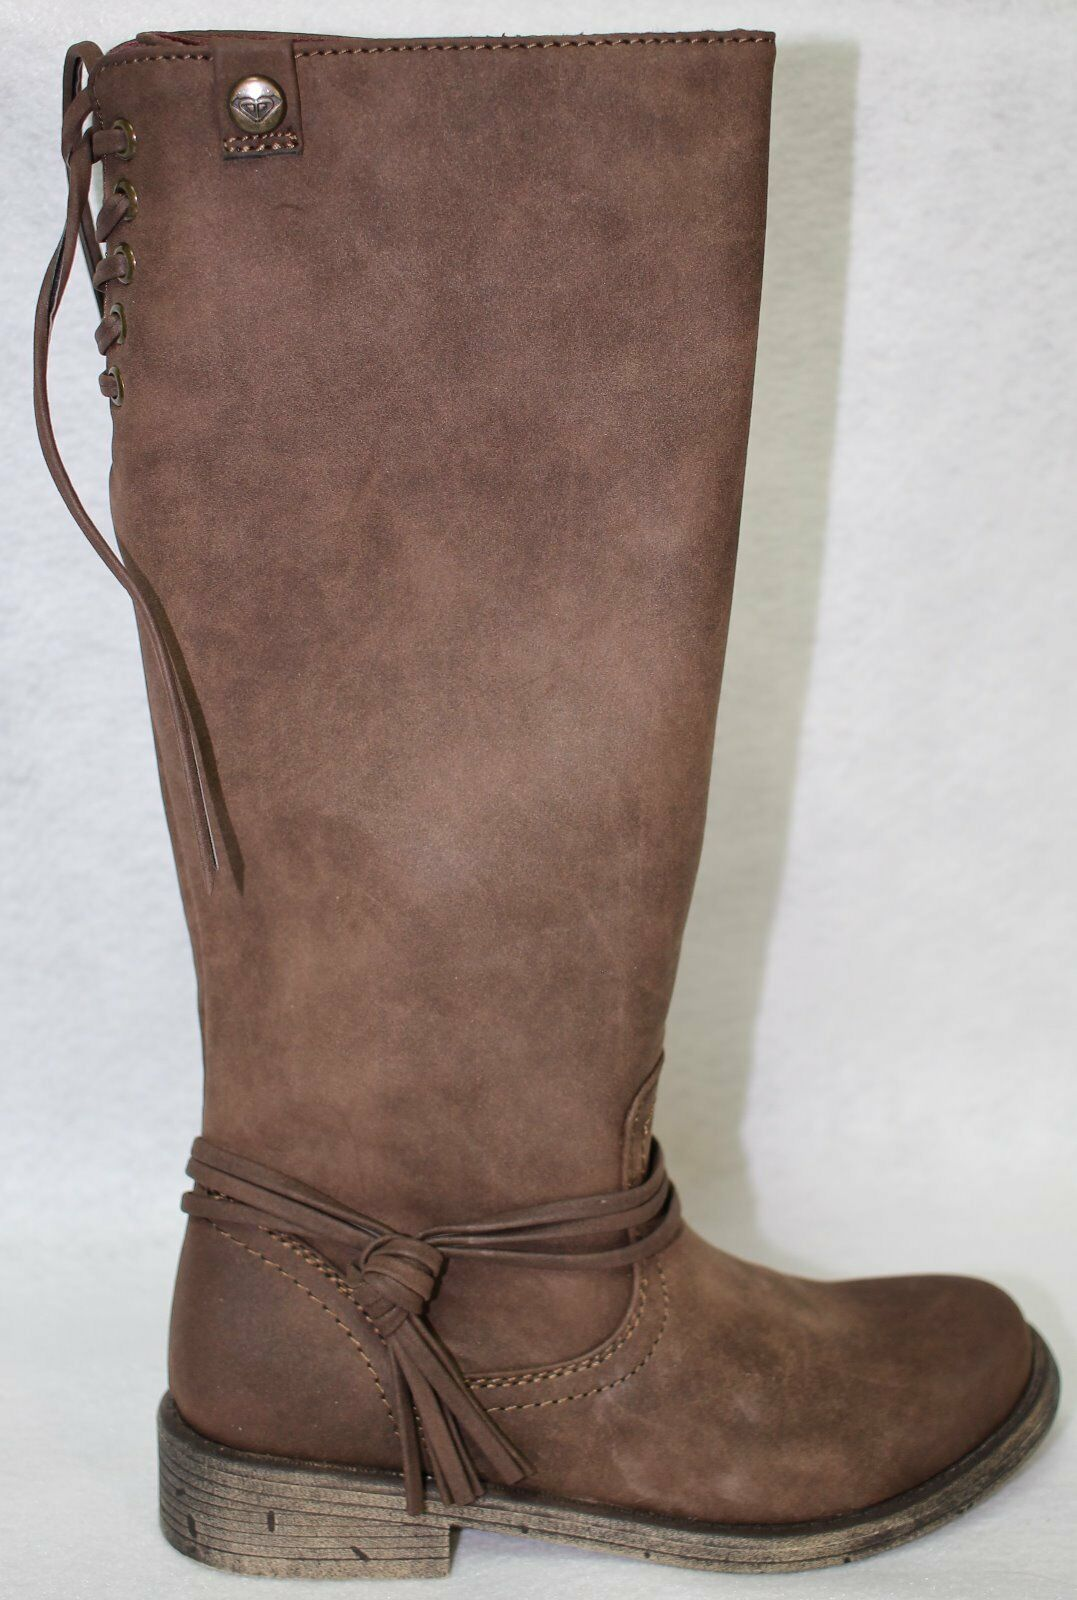 Roxy Rider J Brown Women Round Toe Synthetic Knee High Boot Size 7